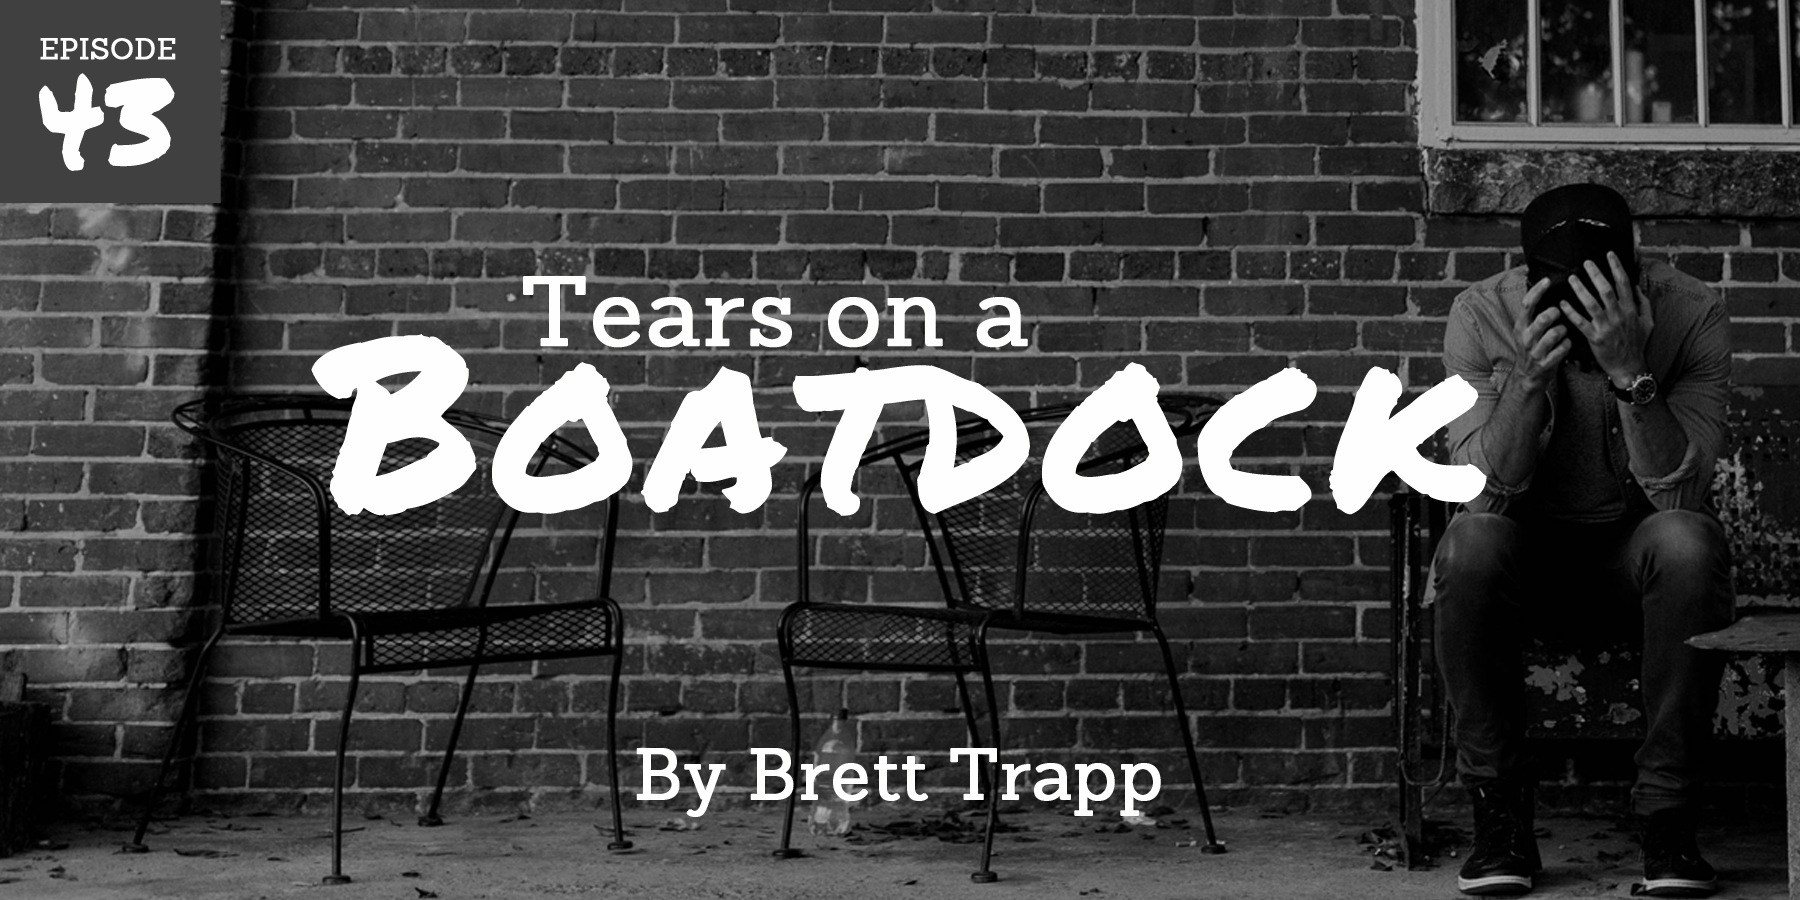 """""""I sprinted down that path, through the trees, all the way out to the boat dock—heaving, shaking, and sobbing as I ran. I felt like I might choke, fighting for breath. My face poured wet salt onto the summer grass below..."""""""